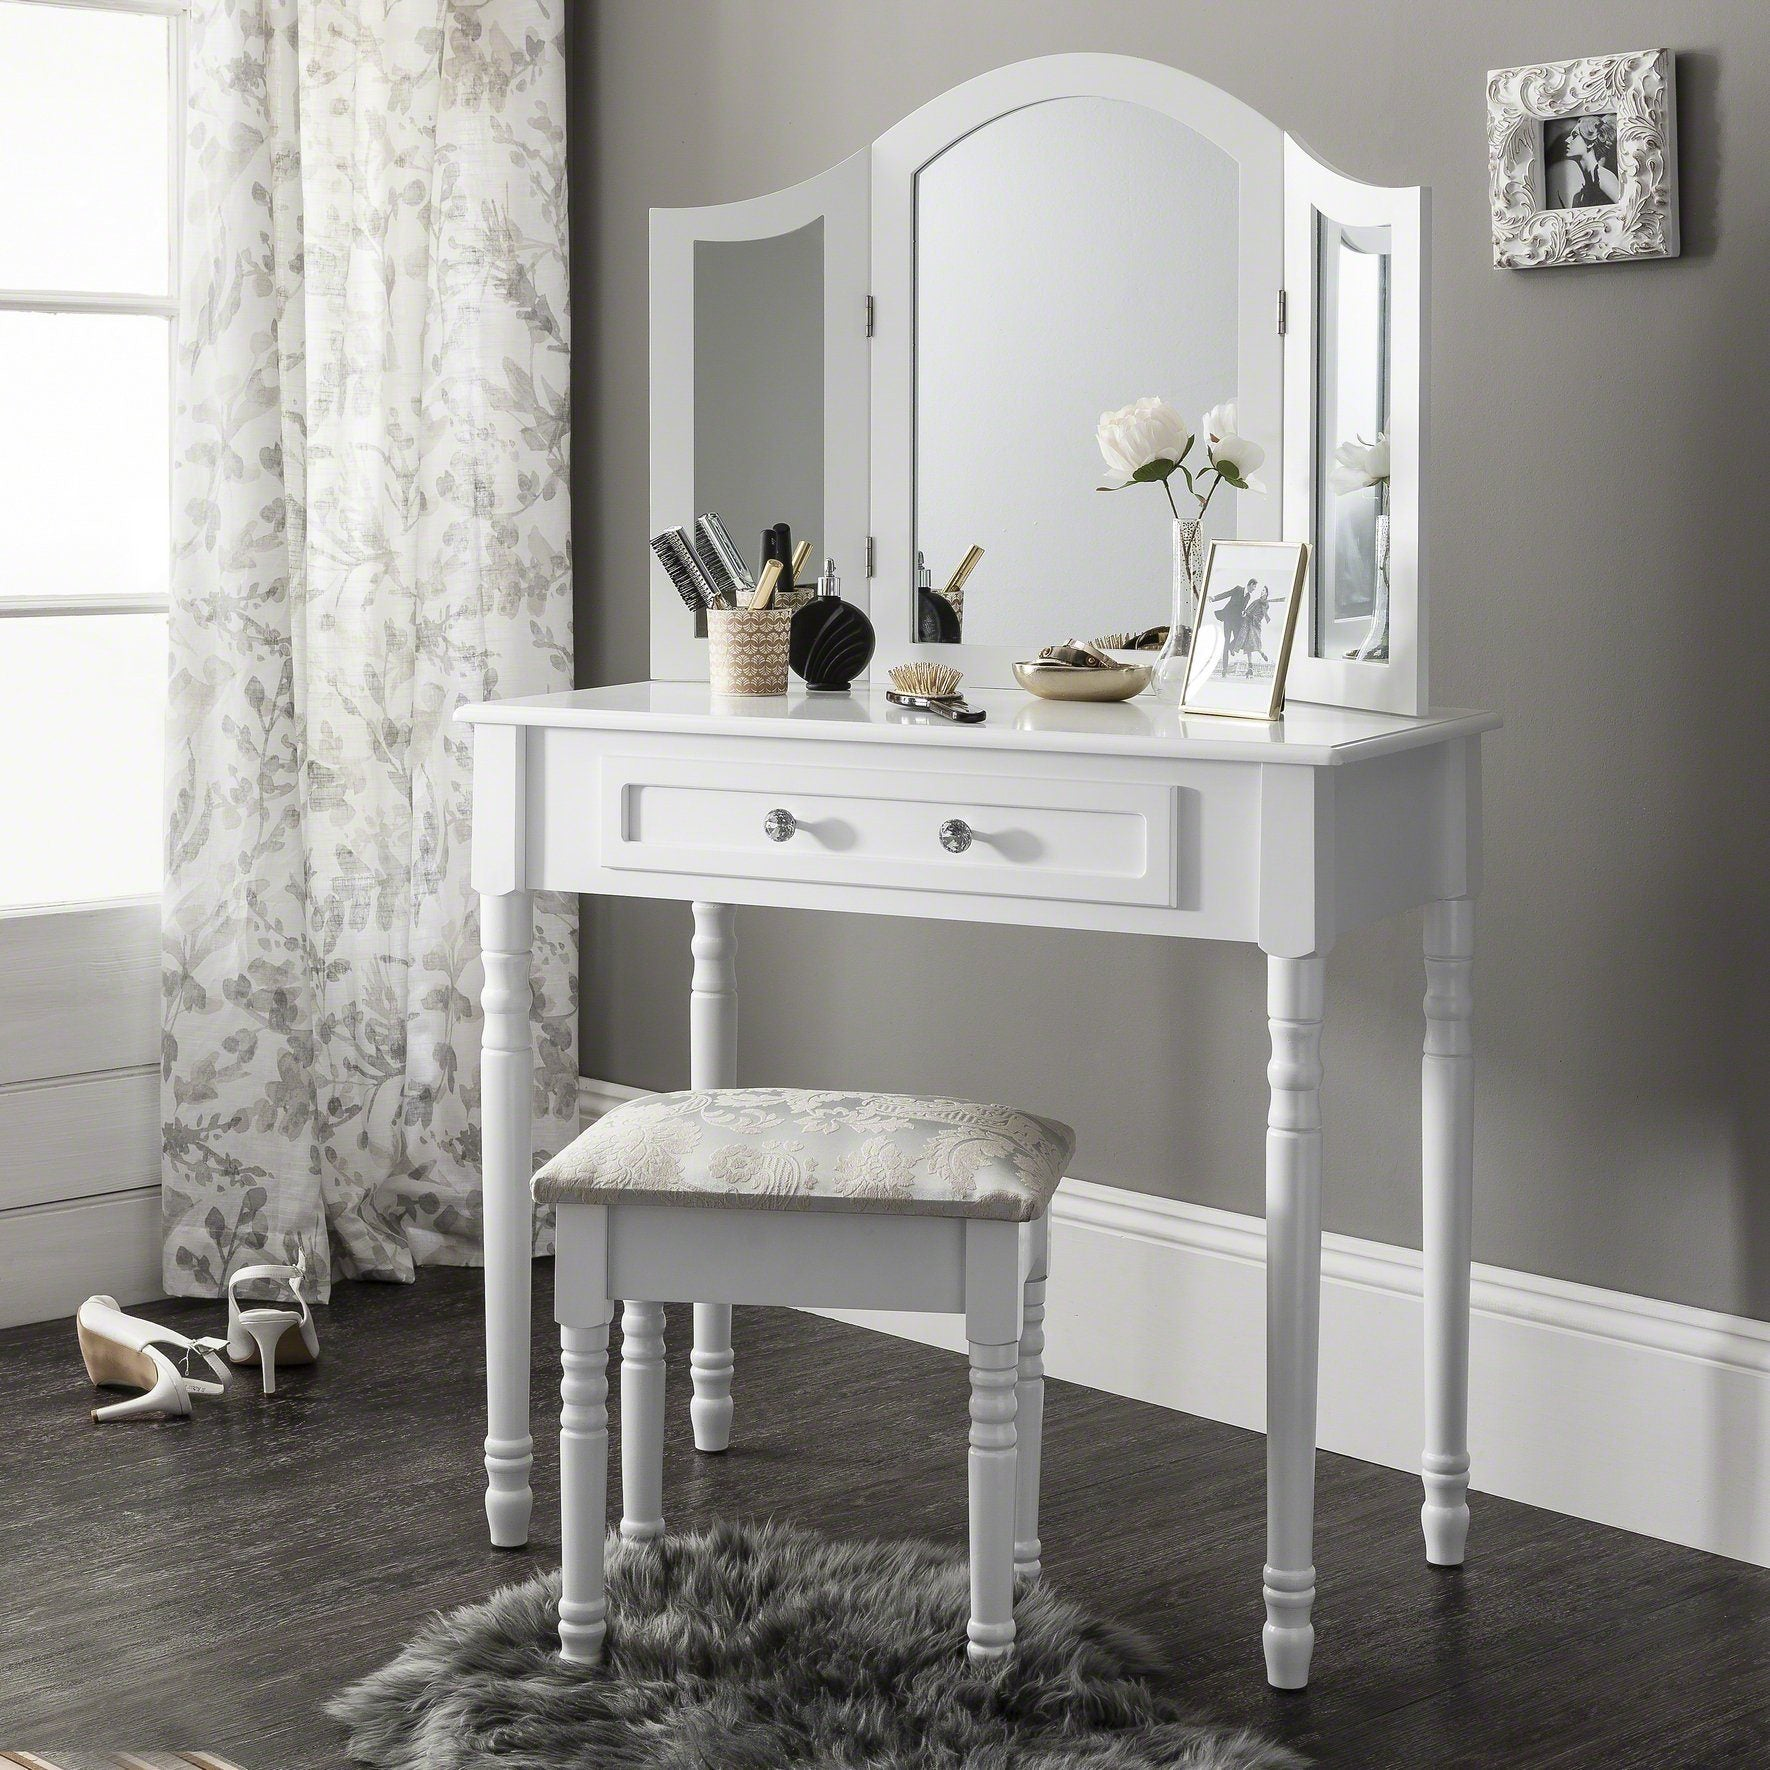 Sienna Dressing Table Stool Mirror Set White Painted Laura James